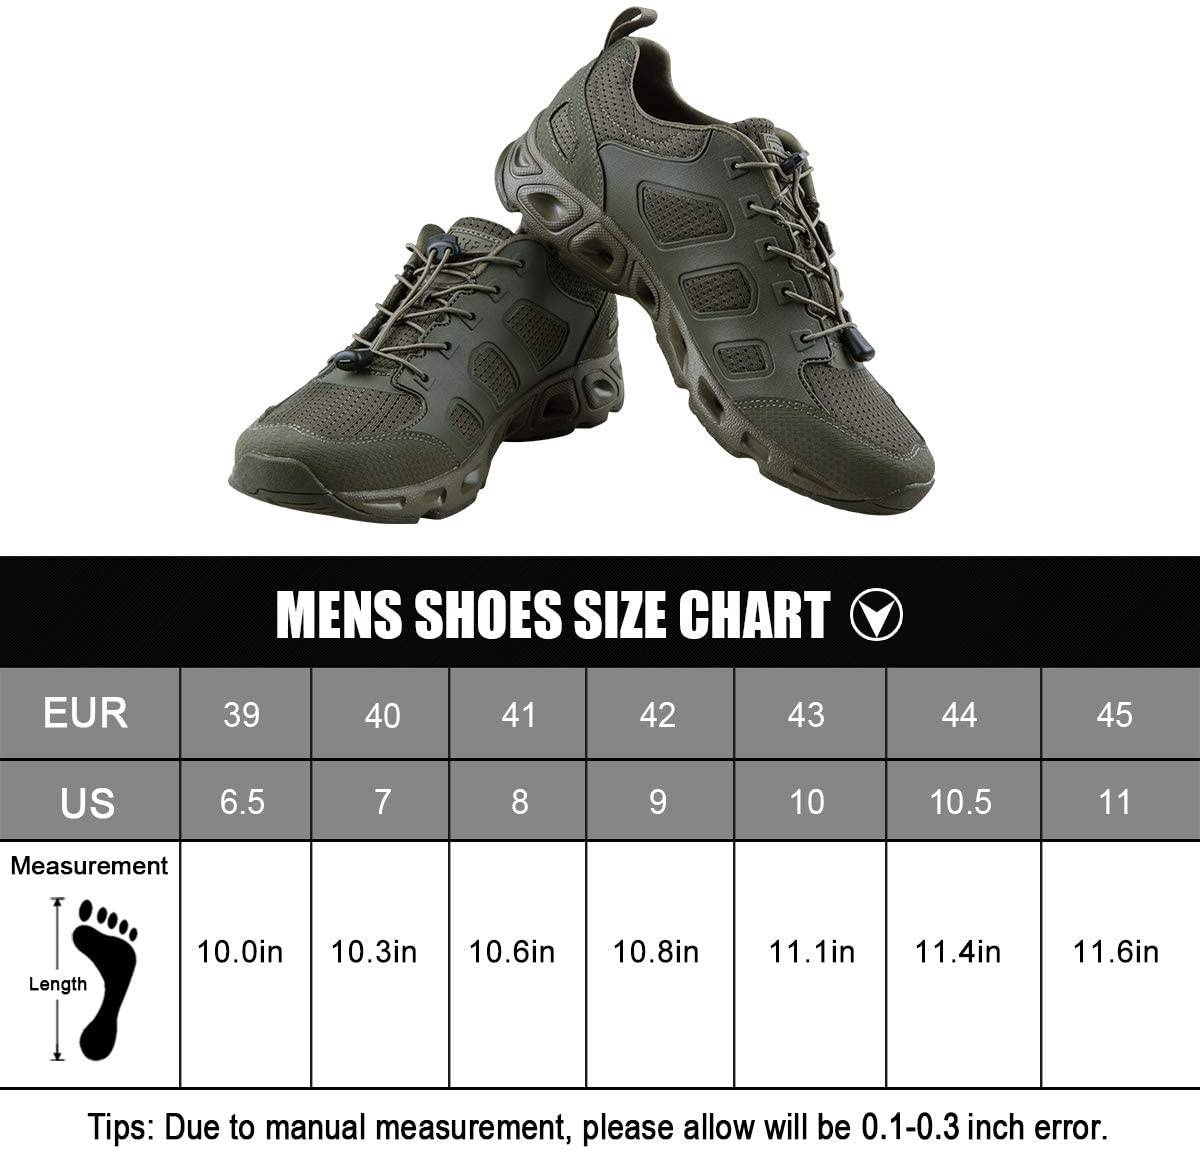 tactical shoes black |  tactical shoes mens |  tactical shoes near me |  tactical shoes nike |  tactical shoes womens |  tactical shoes made in usa |  tactical shoes under armour |  tactical shoes amazon |  tactical shoes and boots |  tactical shoes academy |  tactical shoes adidas |  tactical shoes australia |  tactical shoes altama |  tactical athletic shoes |  tactical approach shoes |  tactical shoes brands |  tactical shoes brown |  tactical shoes best |  tactical business shoes |  tactical boat shoes |  tactical boot shoes |  tactical bag shoes |  tactical shoes canada |  tactical shoes casual |  tactical shoes cheap |  tactical shoes camouflage |  tactical shoes calgary |  tactical shoes combat |  tactical converse shoes |  tactical canvas shoes |  tactical shoes dubai |  tactical dress shoes |  tactical dog shoes |  tactical delta shoes |  tactical duty shoes |  tactical dive shoes |  5.11 tactical dress shoes |  black tactical dress shoes |  tactical shoes ebay |  tactical shoes edmonton |  tactical elite shoes |  tactical elite shoes review |  tactical everyday shoes |  tactical edc shoes |  esdy tactical shoes |  ems tactical shoes |  tactical shoes for sale |  tactical shoes for running |  tactical shoes for sale in cebu |  tactical formal shoes |  tactical flat shoes |  best tactical shoes for police |  oakley tactical shoes for sale philippines |  tactical combat shoes for sale |  tactical gear shoes |  tactical gym shoes |  tactical geographic shoes |  tactical gear shoes for sale |  black tactical gym shoes |  gibson tactical shoes |  good tactical shoes |  green tactical shoes |  tactical shoes hiking |  tactical shoes hiking sneaker |  tactical house shoes |  best tactical hiking shoes |  haix tactical shoes |  hoka tactical shoes |  lalo tactical shoes |  tactical shoes india |  tactical shoes images |  tactical shoes in canada |  tactical shoes in karachi |  tactical shoes indonesia |  tactical indestructible shoes amazon |  tactical shoes online india |  tactical shoes jb10 |  jordan tactical shoes |  jual tactical shoes |  tactical shoes khaki |  tactical k9 shoes |  keen tactical shoes |  tactical shoes low cut |  tactical shoes lebanon |  tactical shoes lazada |  tactical shoes low |  tactical shoes lowa |  tactical shoes lightweight |  tactical leather shoes |  tactical light shoes |  tactical shoes merrell |  tactical shoes malaysia |  tactical shoes magnum |  tactical shoes mid |  tactical shoes melbourne |  tactical military shoes |  tactical shoes nz |  tactical ninja shoes |  tactical nylon shoes |  tactical shoes store near me |  men's tactical shoes near me |  new tactical shoes |  tactical shoes oakley |  tactical shoes online |  tactical shoes olx |  tactical oxford shoes |  tactical operator shoes |  tactical office shoes |  tactical outdoor shoes |  tactical shoes philippines |  tactical shoes pakistan |  tactical shoes price |  tactical shoes price philippines |  tactical shoes perth |  tactical shoes price list |  tactical police shoes |  tactical performance shoes |  tactical shoes reddit |  tactical shoes review |  tactical shoes reebok |  tactical running shoes |  tactical research shoes |  tactical range shoes |  tactical rubber shoes |  tactical response shoes |  tactical shoes salomon |  tactical shoes singapore |  tactical shoes south africa |  tactical shoes steel toe |  tactical shoes sale |  tactical shoes shopee |  tactical shoes size 14 |  tactical shoes tan |  tactical shoes that look like converse |  tactical shoes top 10 |  tactical tennis shoes |  tactical training shoes |  tactical trainer shoes |  tactical trail shoes |  tactical trading shoes |  tactical shoes uae |  tactical shoes uk |  tactical shoes under armor |  tactical urban shoes |  tactical utility shoes |  tactical lace up shoes |  tactical vans shoes |  viktos tactical shoes |  vibram tactical shoes |  vasque tactical shoes |  voodoo tactical shoes |  tactical vest shoes |  tactical shoes walmart |  tactical shoes waterproof |  tactical shoes with zipper |  tactical shoes wide |  tactical shoes where to buy |  tactical water shoes |  tactical work shoes |  tactical shoes yellow |  tactical shoes 11.5 |  tactical shoes 12.5 |  tactical shoes 11 |  tactical shoes size 15 |  tactical shoes 2020 |  best tactical shoes 2020 |  best tactical shoes 2019 |  best tactical shoes 2018 |  tactical ultrarange pro 2 shoes |  moab 2 tactical shoes |  merrell moab 2 tactical shoes |  merrell moab 2 tactical shoes coyote |  tactical shoes 5.11 |  5.11 tactical shoes philippines |  5.11 tactical shoes price |  5.11 tactical shoes review |  511 tactical shoes crossfit |  5.1 tactical shoes |  5 11 tactical shoes |  tactical boots size 6 |  tactical boots size 5 |  6 tactical boots |  6 tactical boot |  8 tactical boots |  tactical boots size 13 |